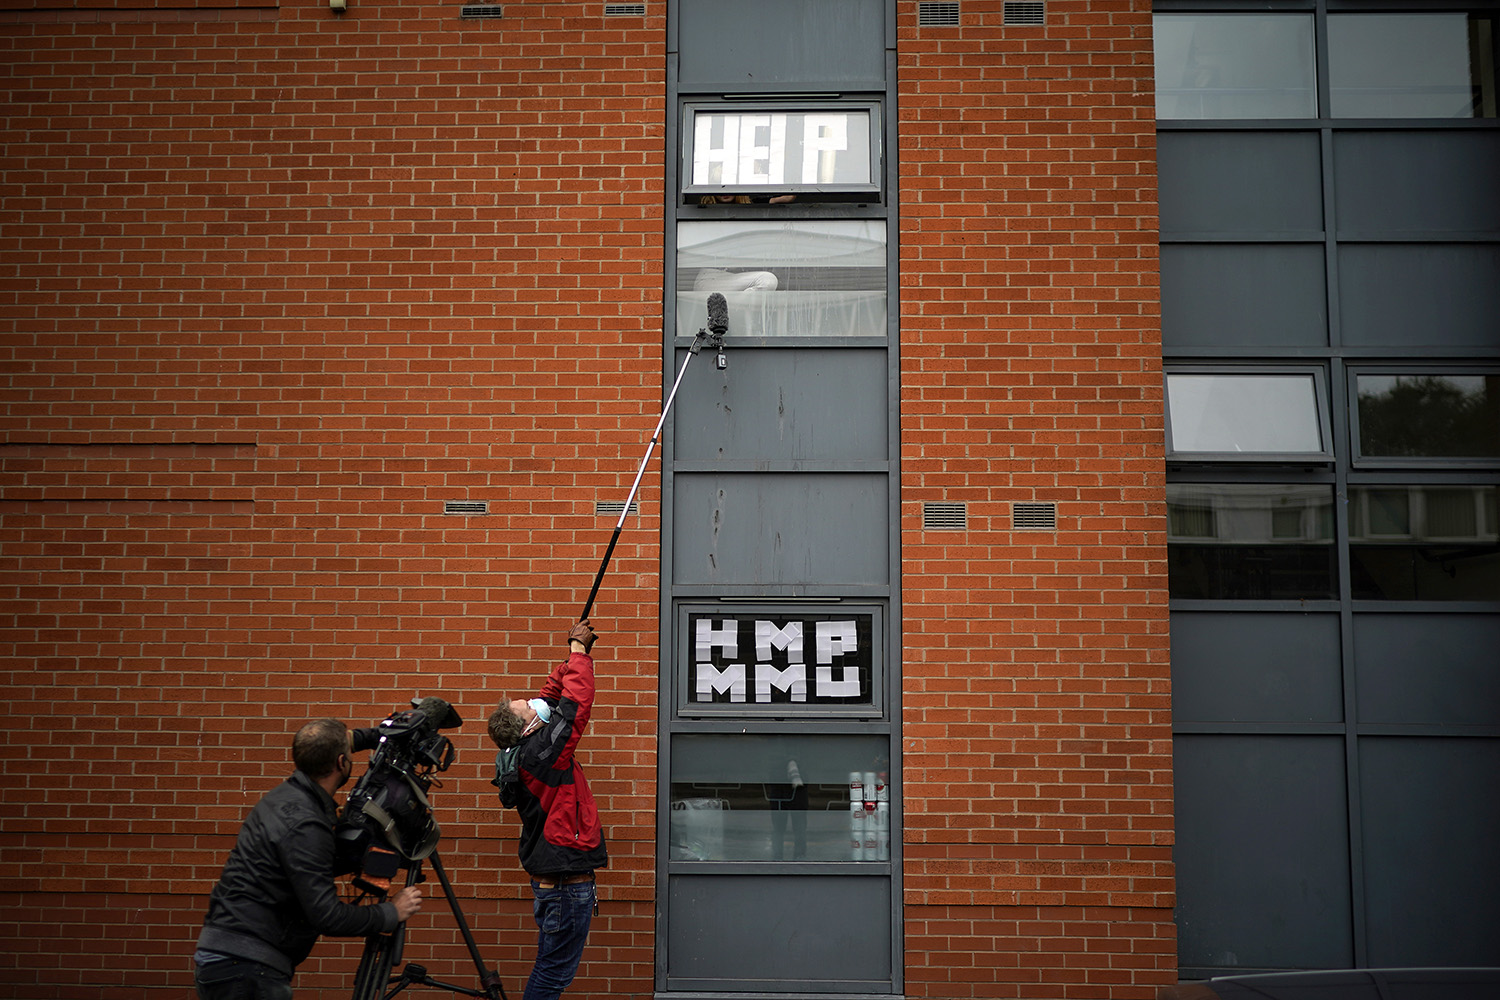 Isolating students peer out of their window as they are interviewed by a television crew in Manchester, England, on Sept. 28. Around 1,700 students across two student housing blocks were told to self-isolate for 14 days after more than 100 students tested positive for COVID-19. Christopher Furlong/Getty Images